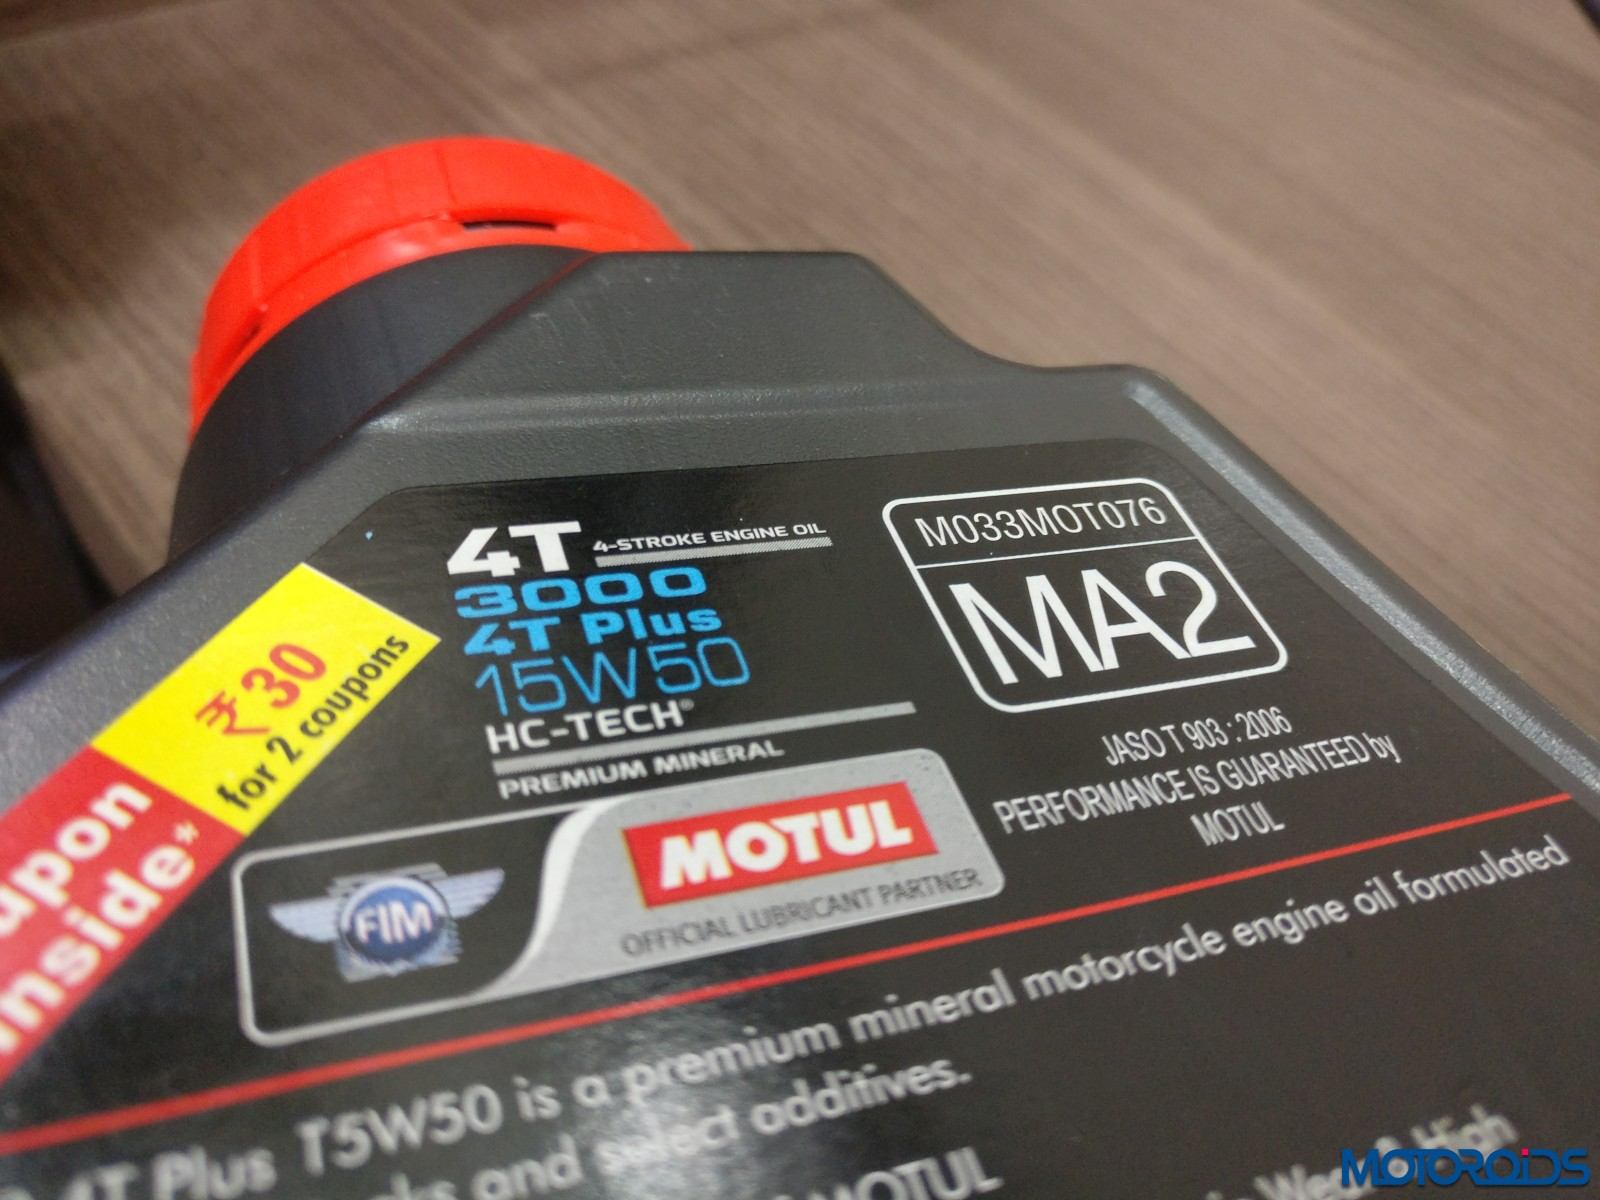 Motul All About Lubes : Engine Oil Basics, Difference